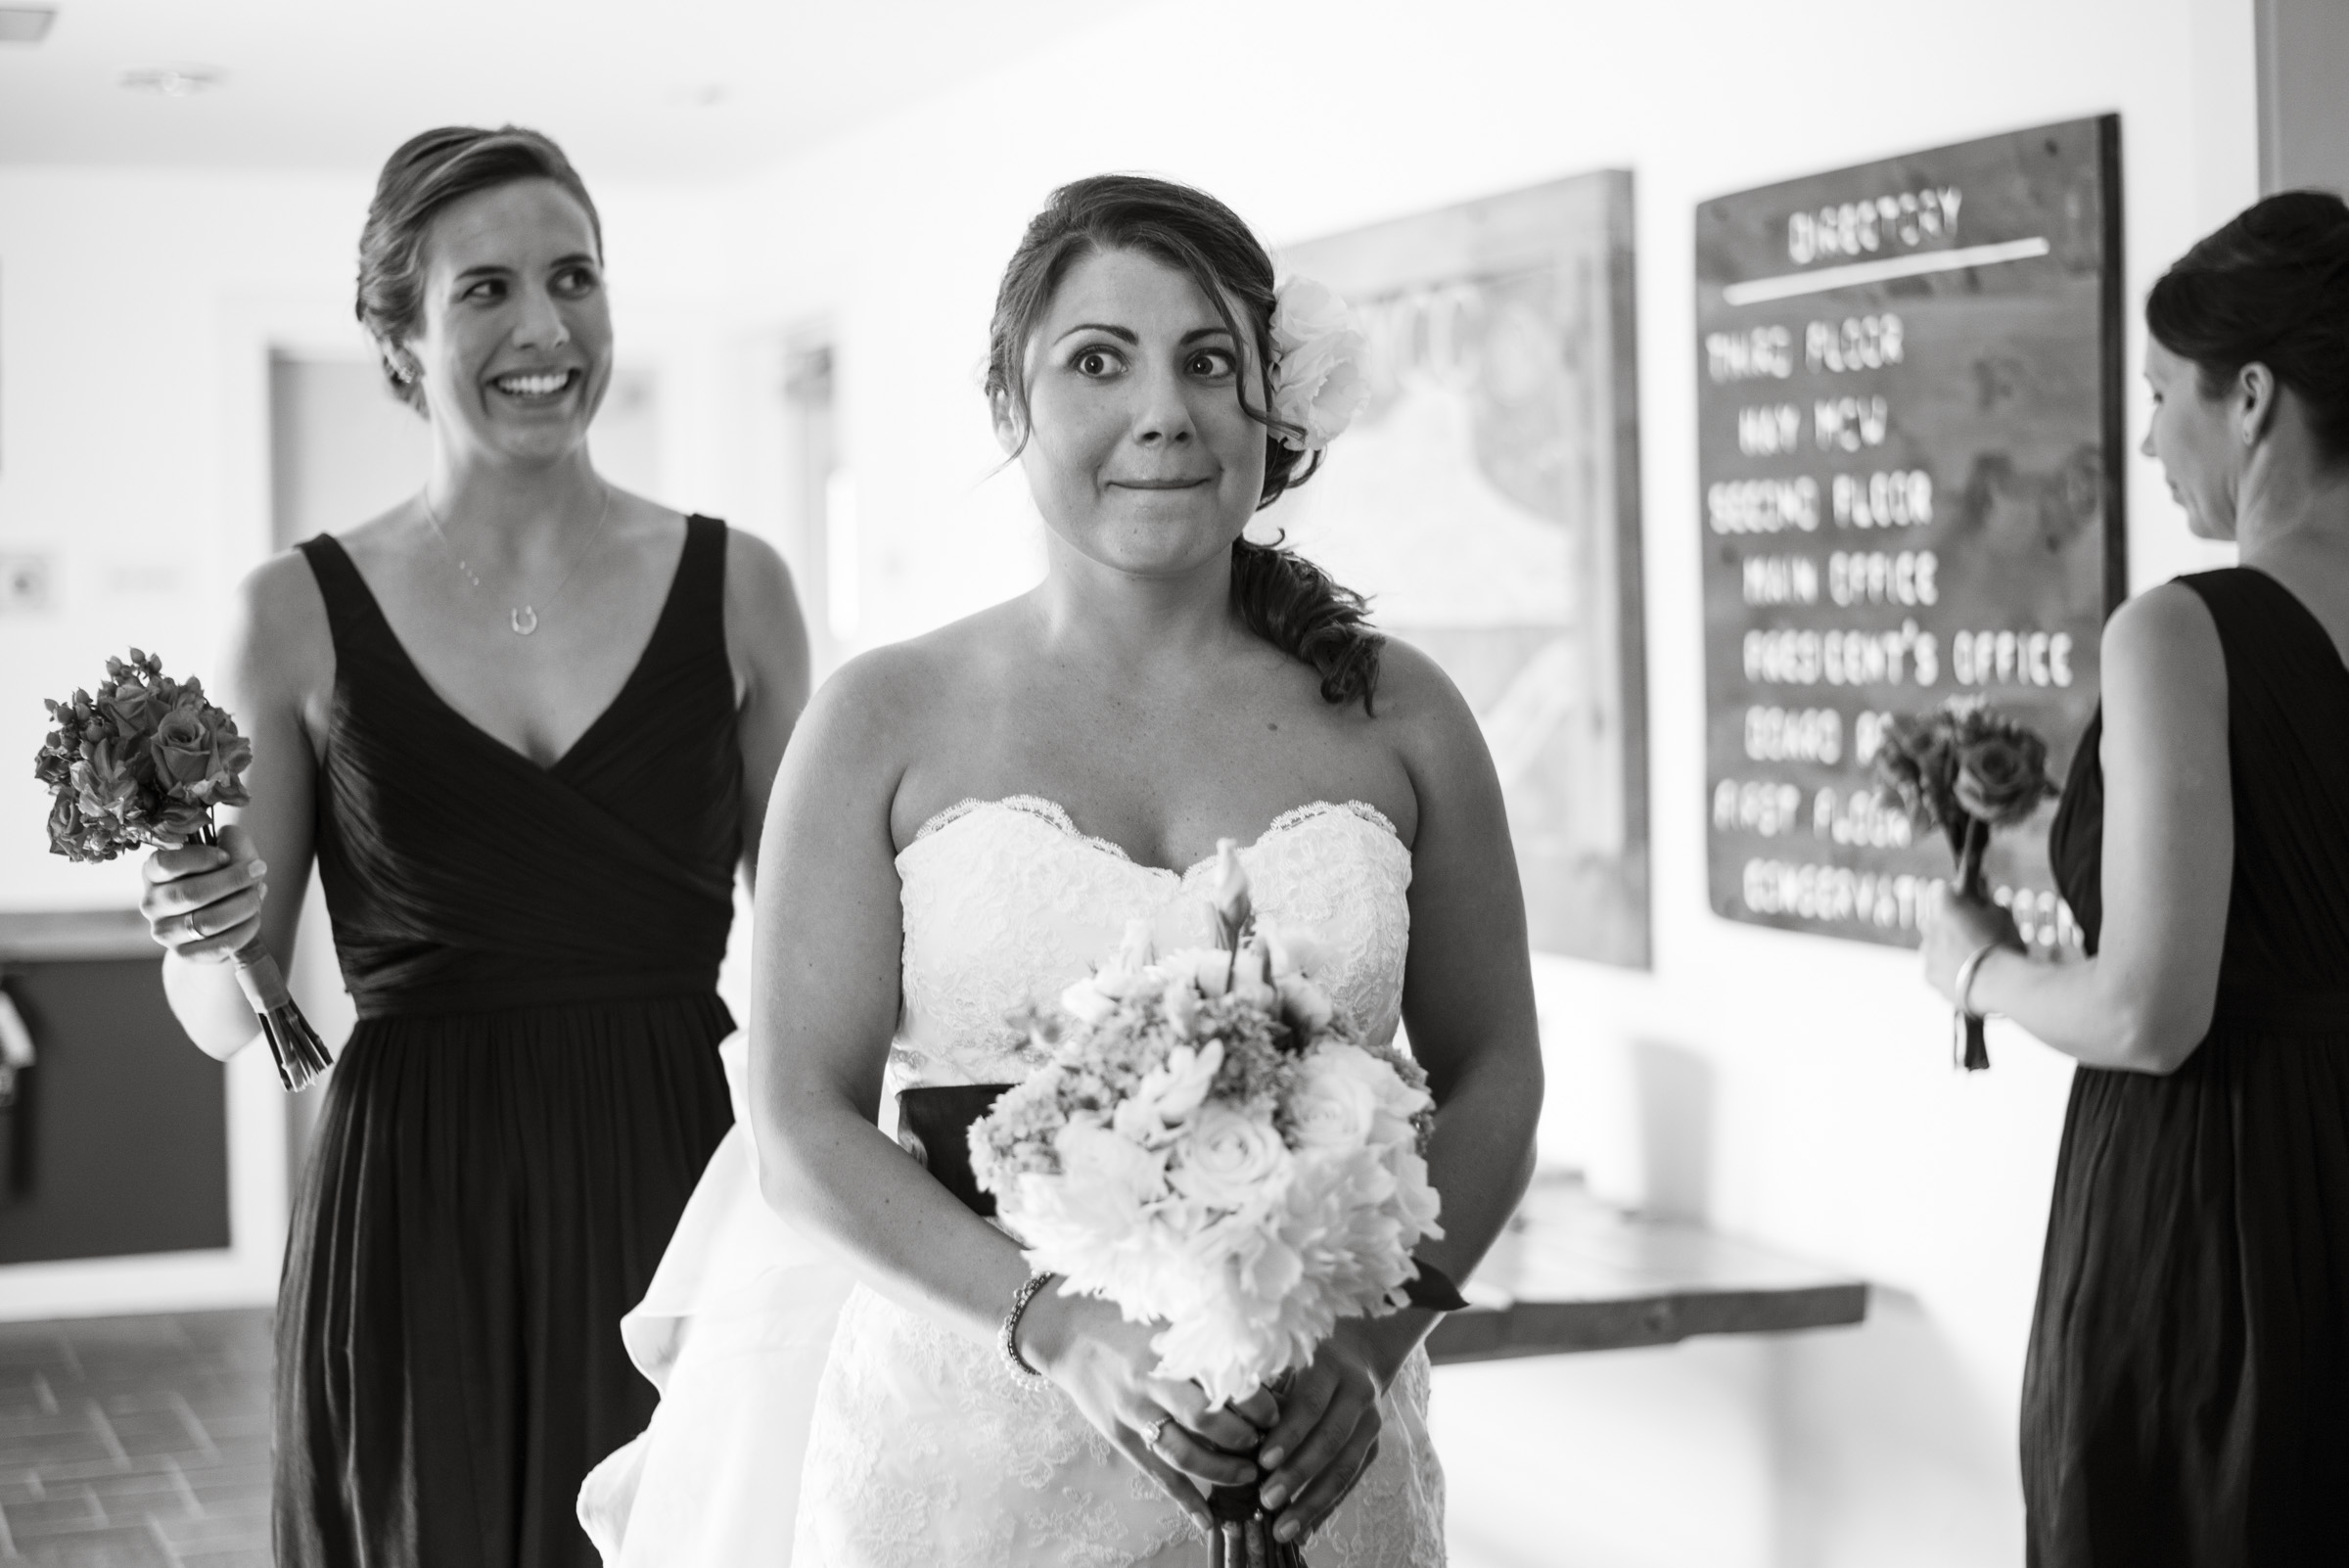 08232014-Chris&VanessaWedding-JuliaLuckettPhotography-129